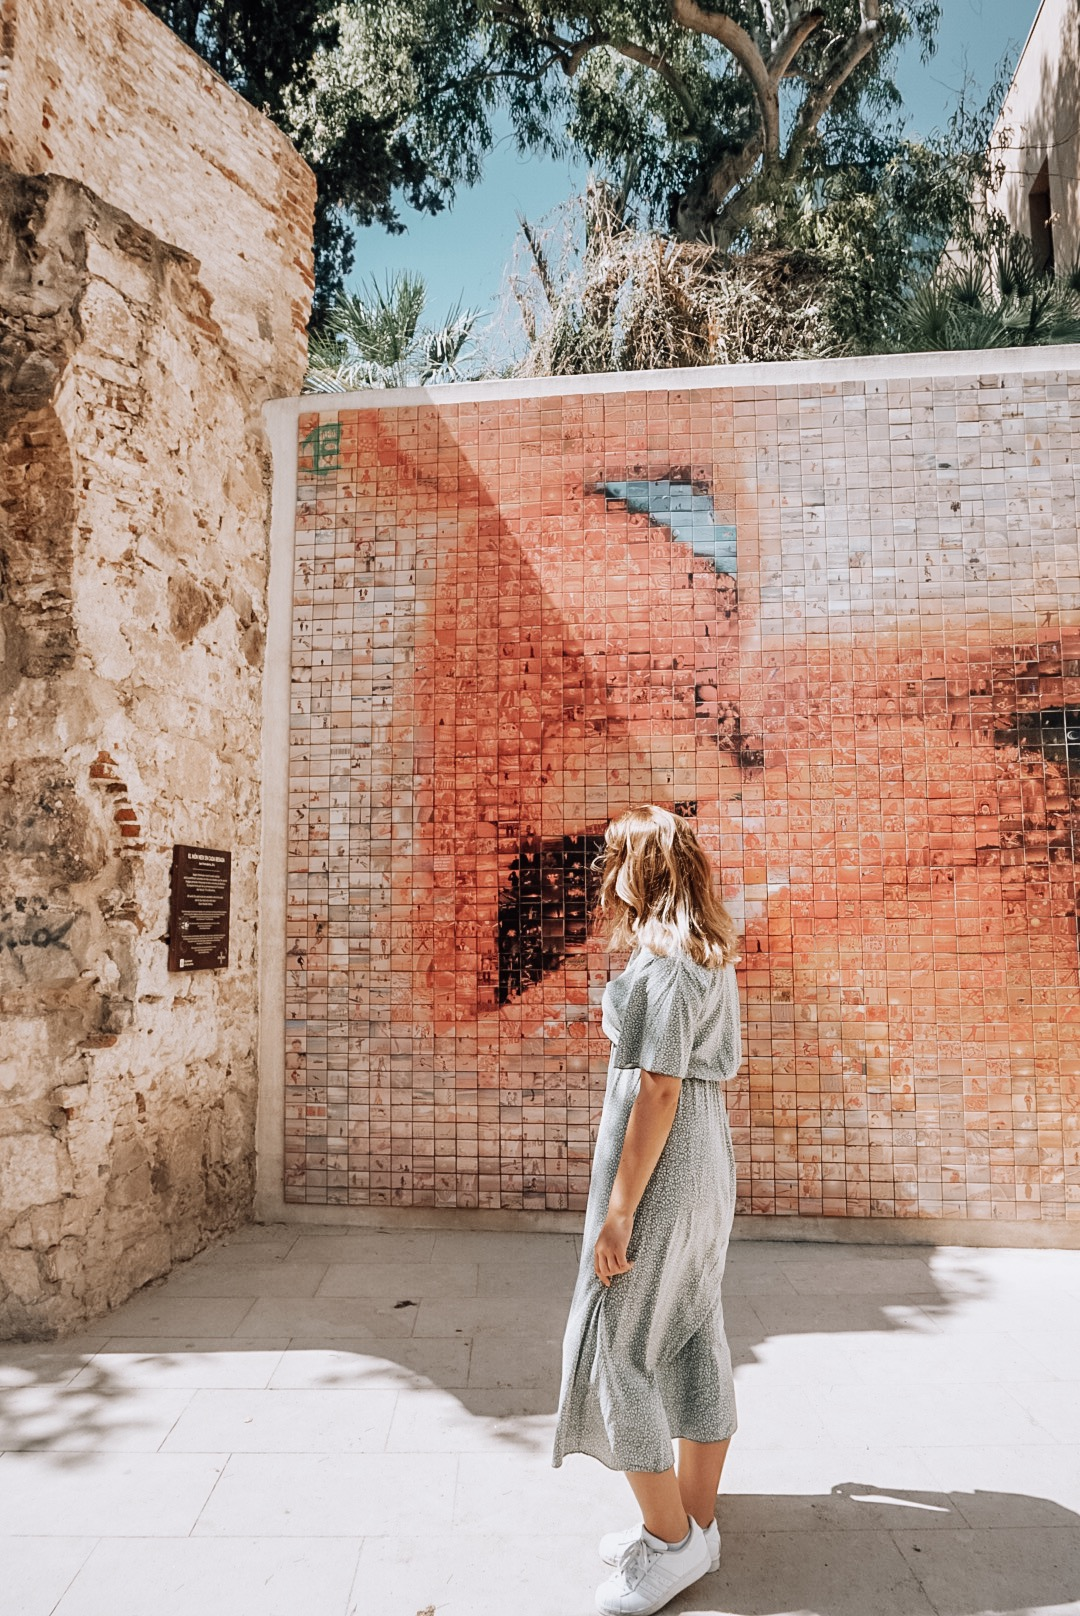 the kiss of freedom, instagram, picture, barcelona, wall in barcelona